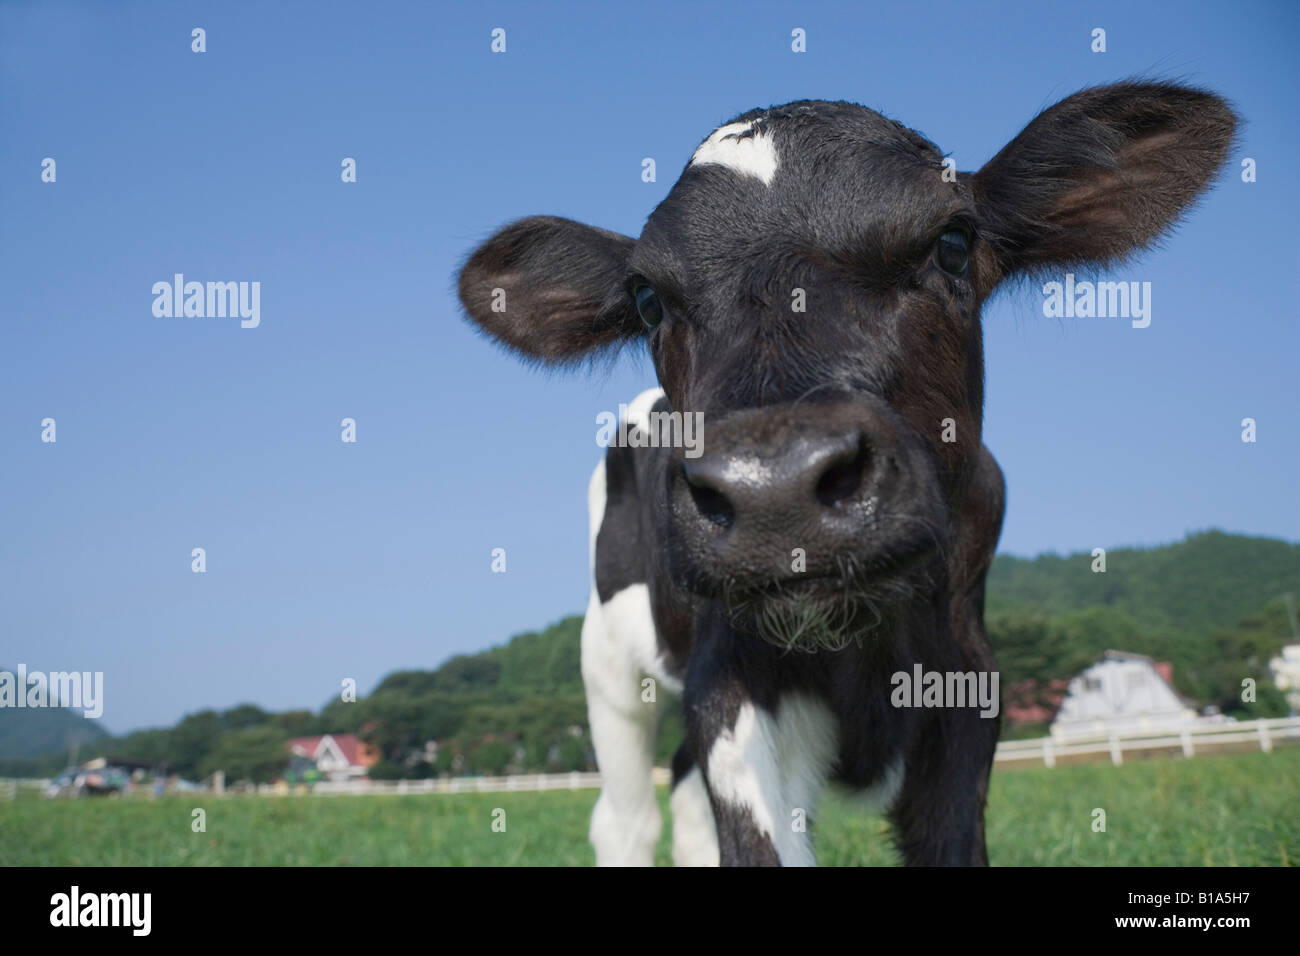 One calf standing - Stock Image